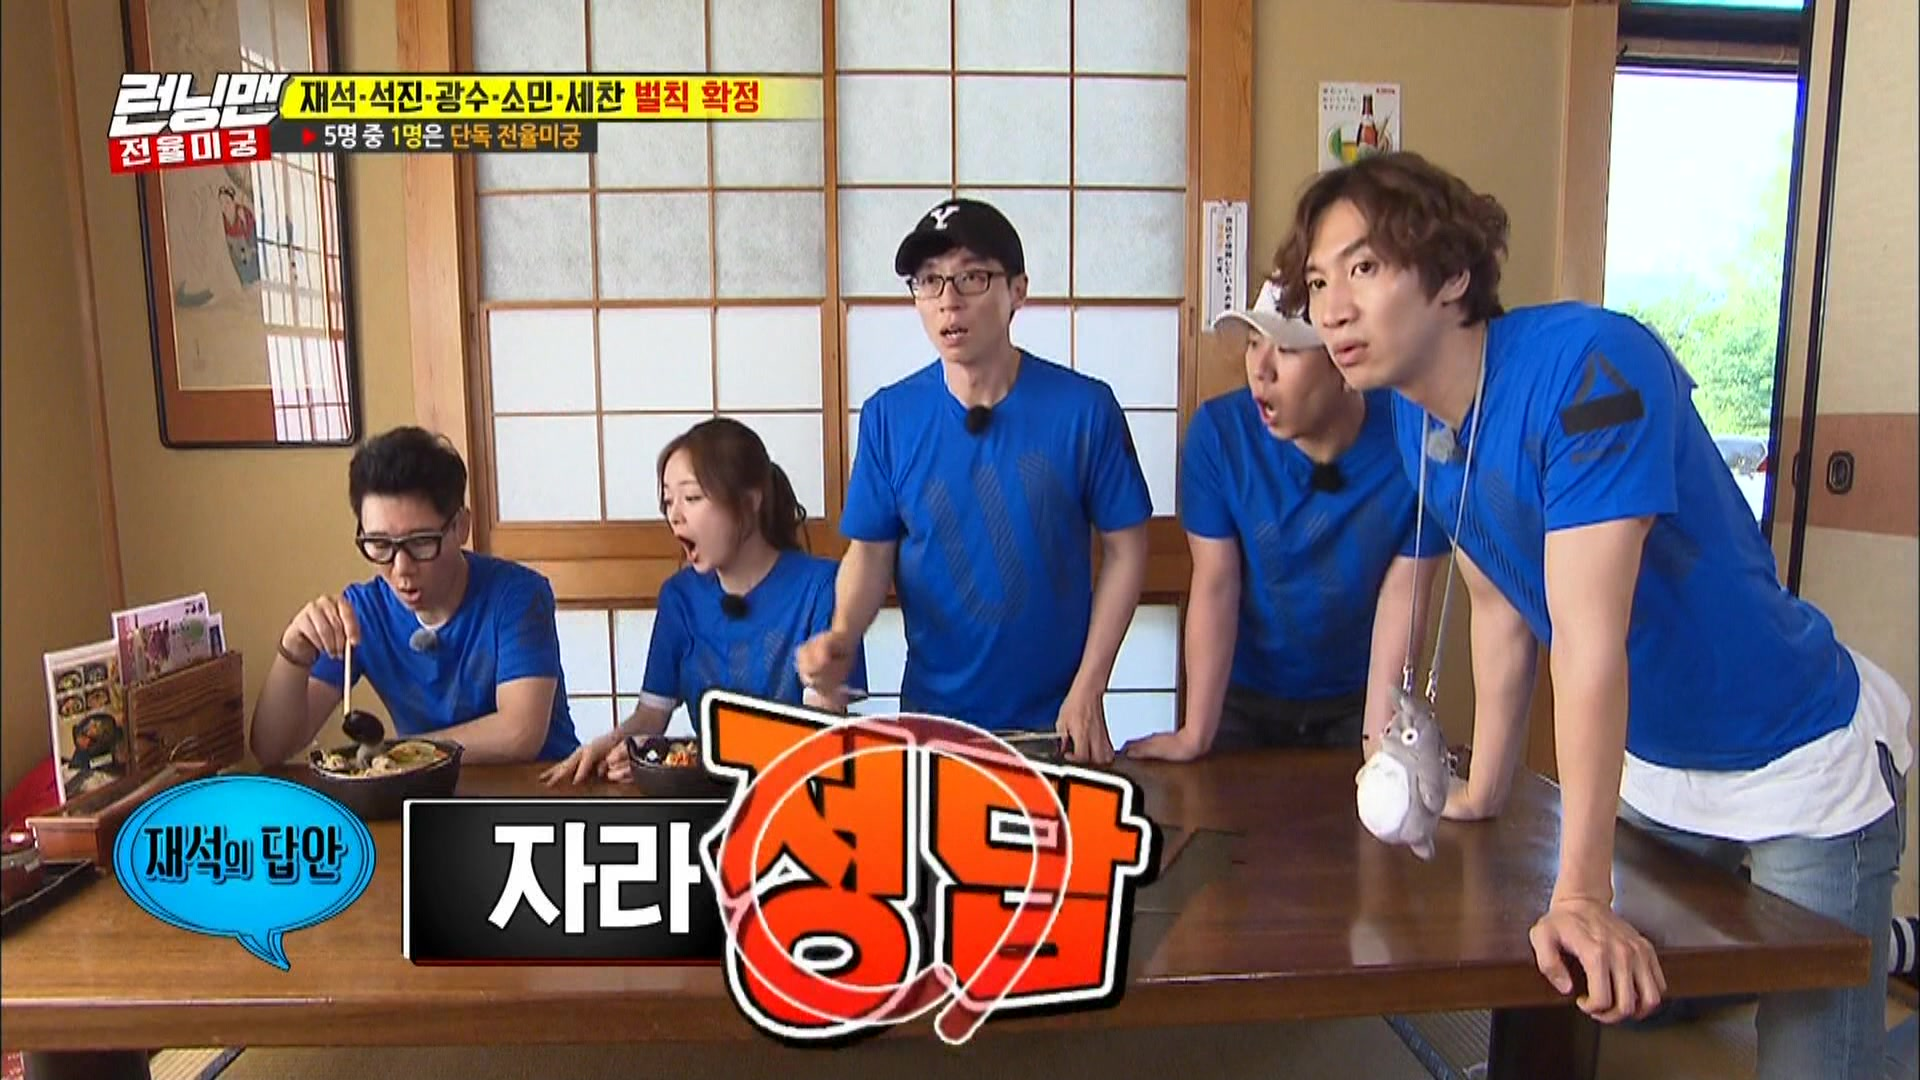 """Running Man Episode 354: """"Global Project: Super Scary Labyrinth of Fear"""" (Global Race VIII - FINAL)"""